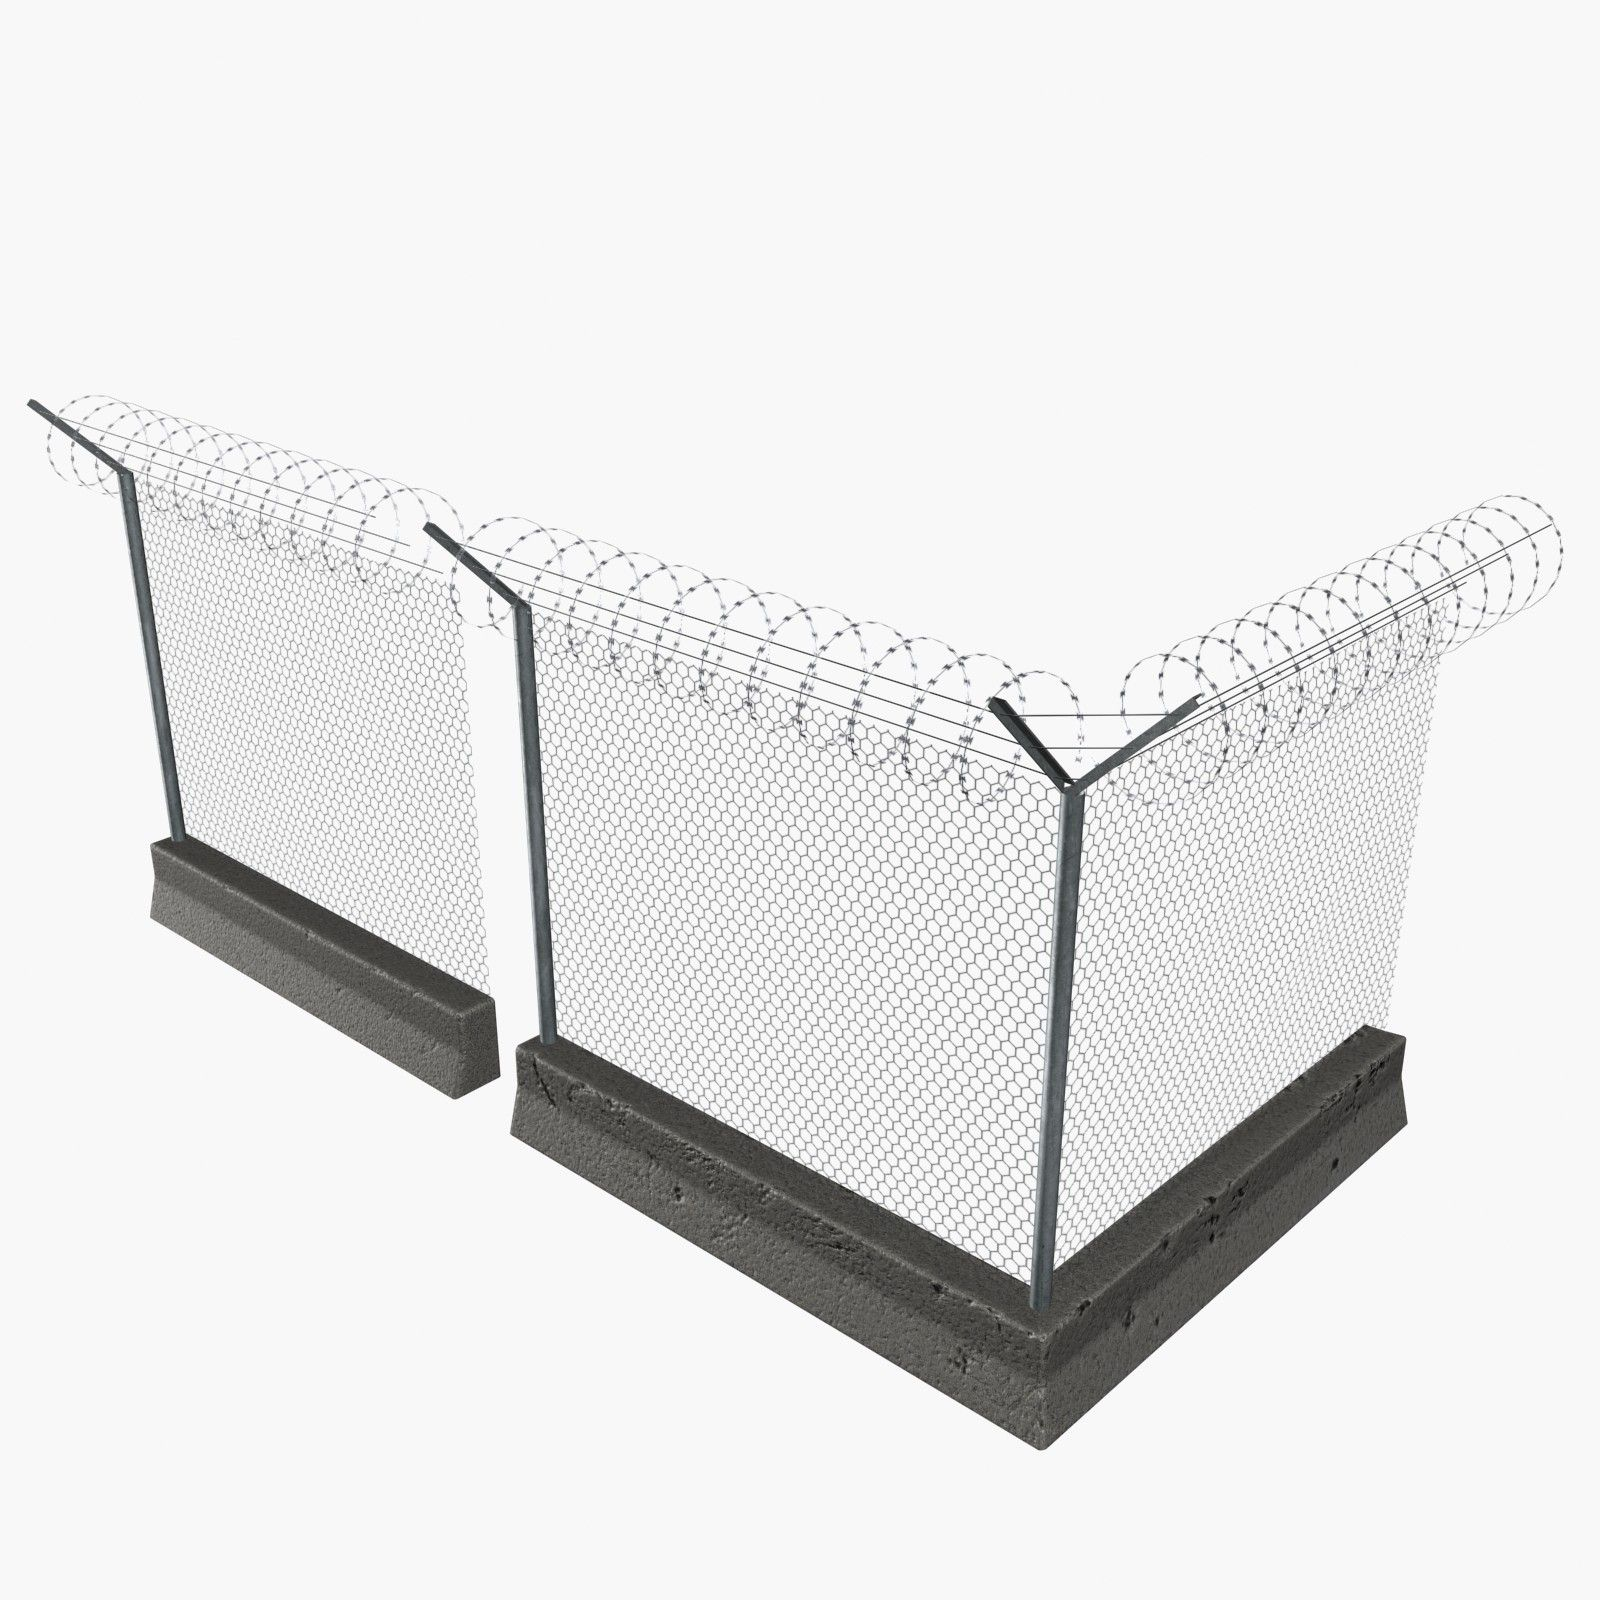 3D Modular Concrete Wire Fences Model - 3D Model | 3D-Modeling ...